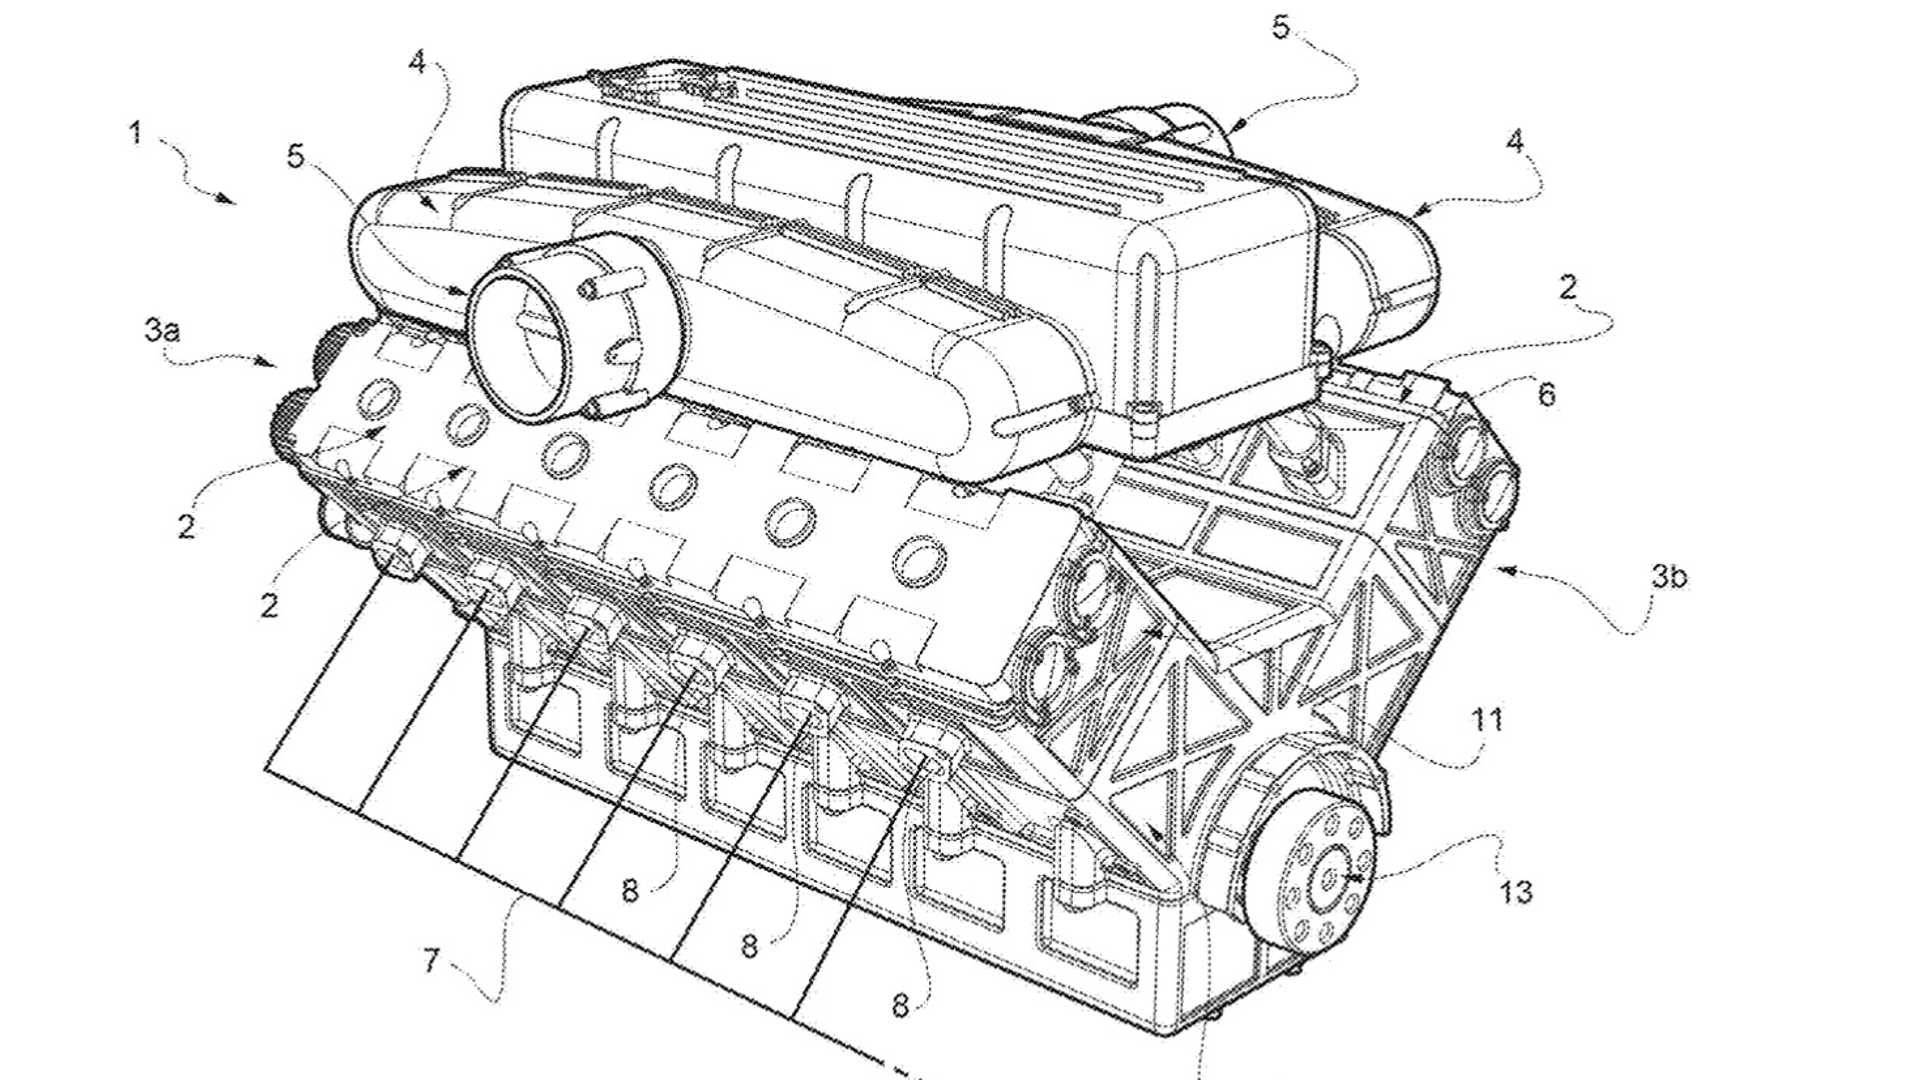 Ferrari Patents More Efficient V12 Engine